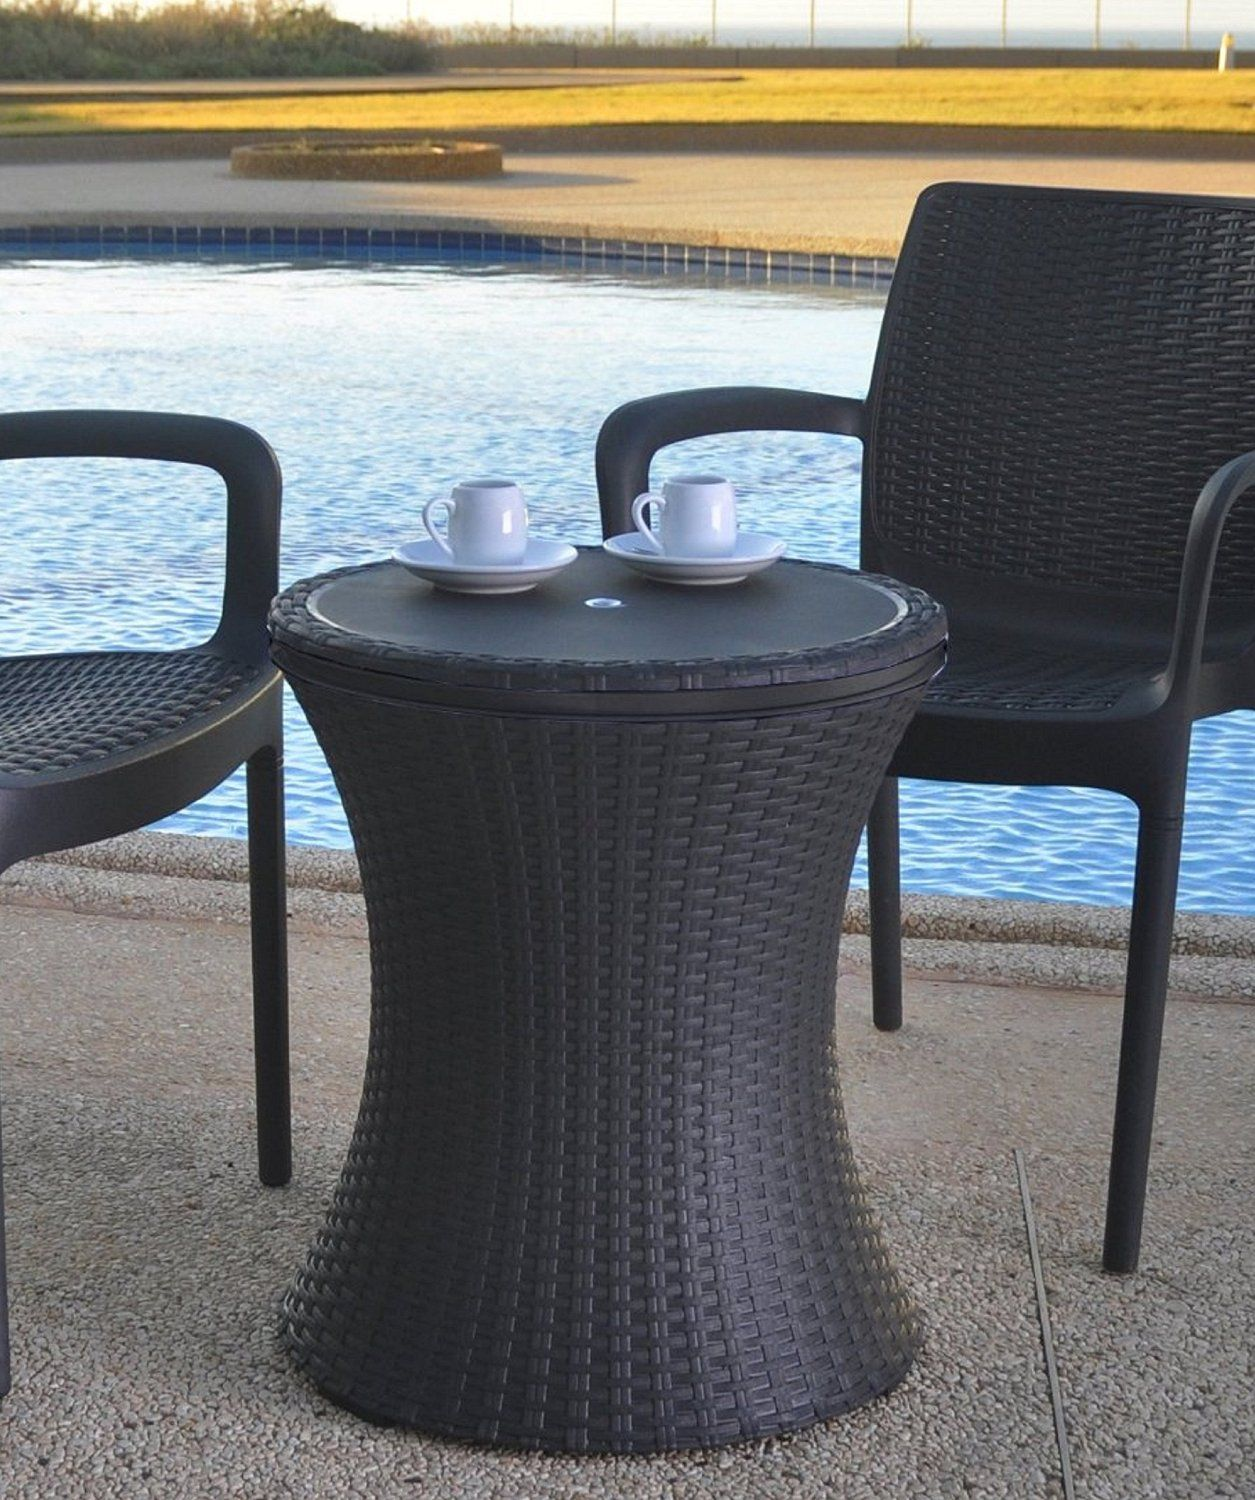 Amazon.com: Keter 7.5-Gal Cool Bar Rattan Style Outdoor Patio Pool ...